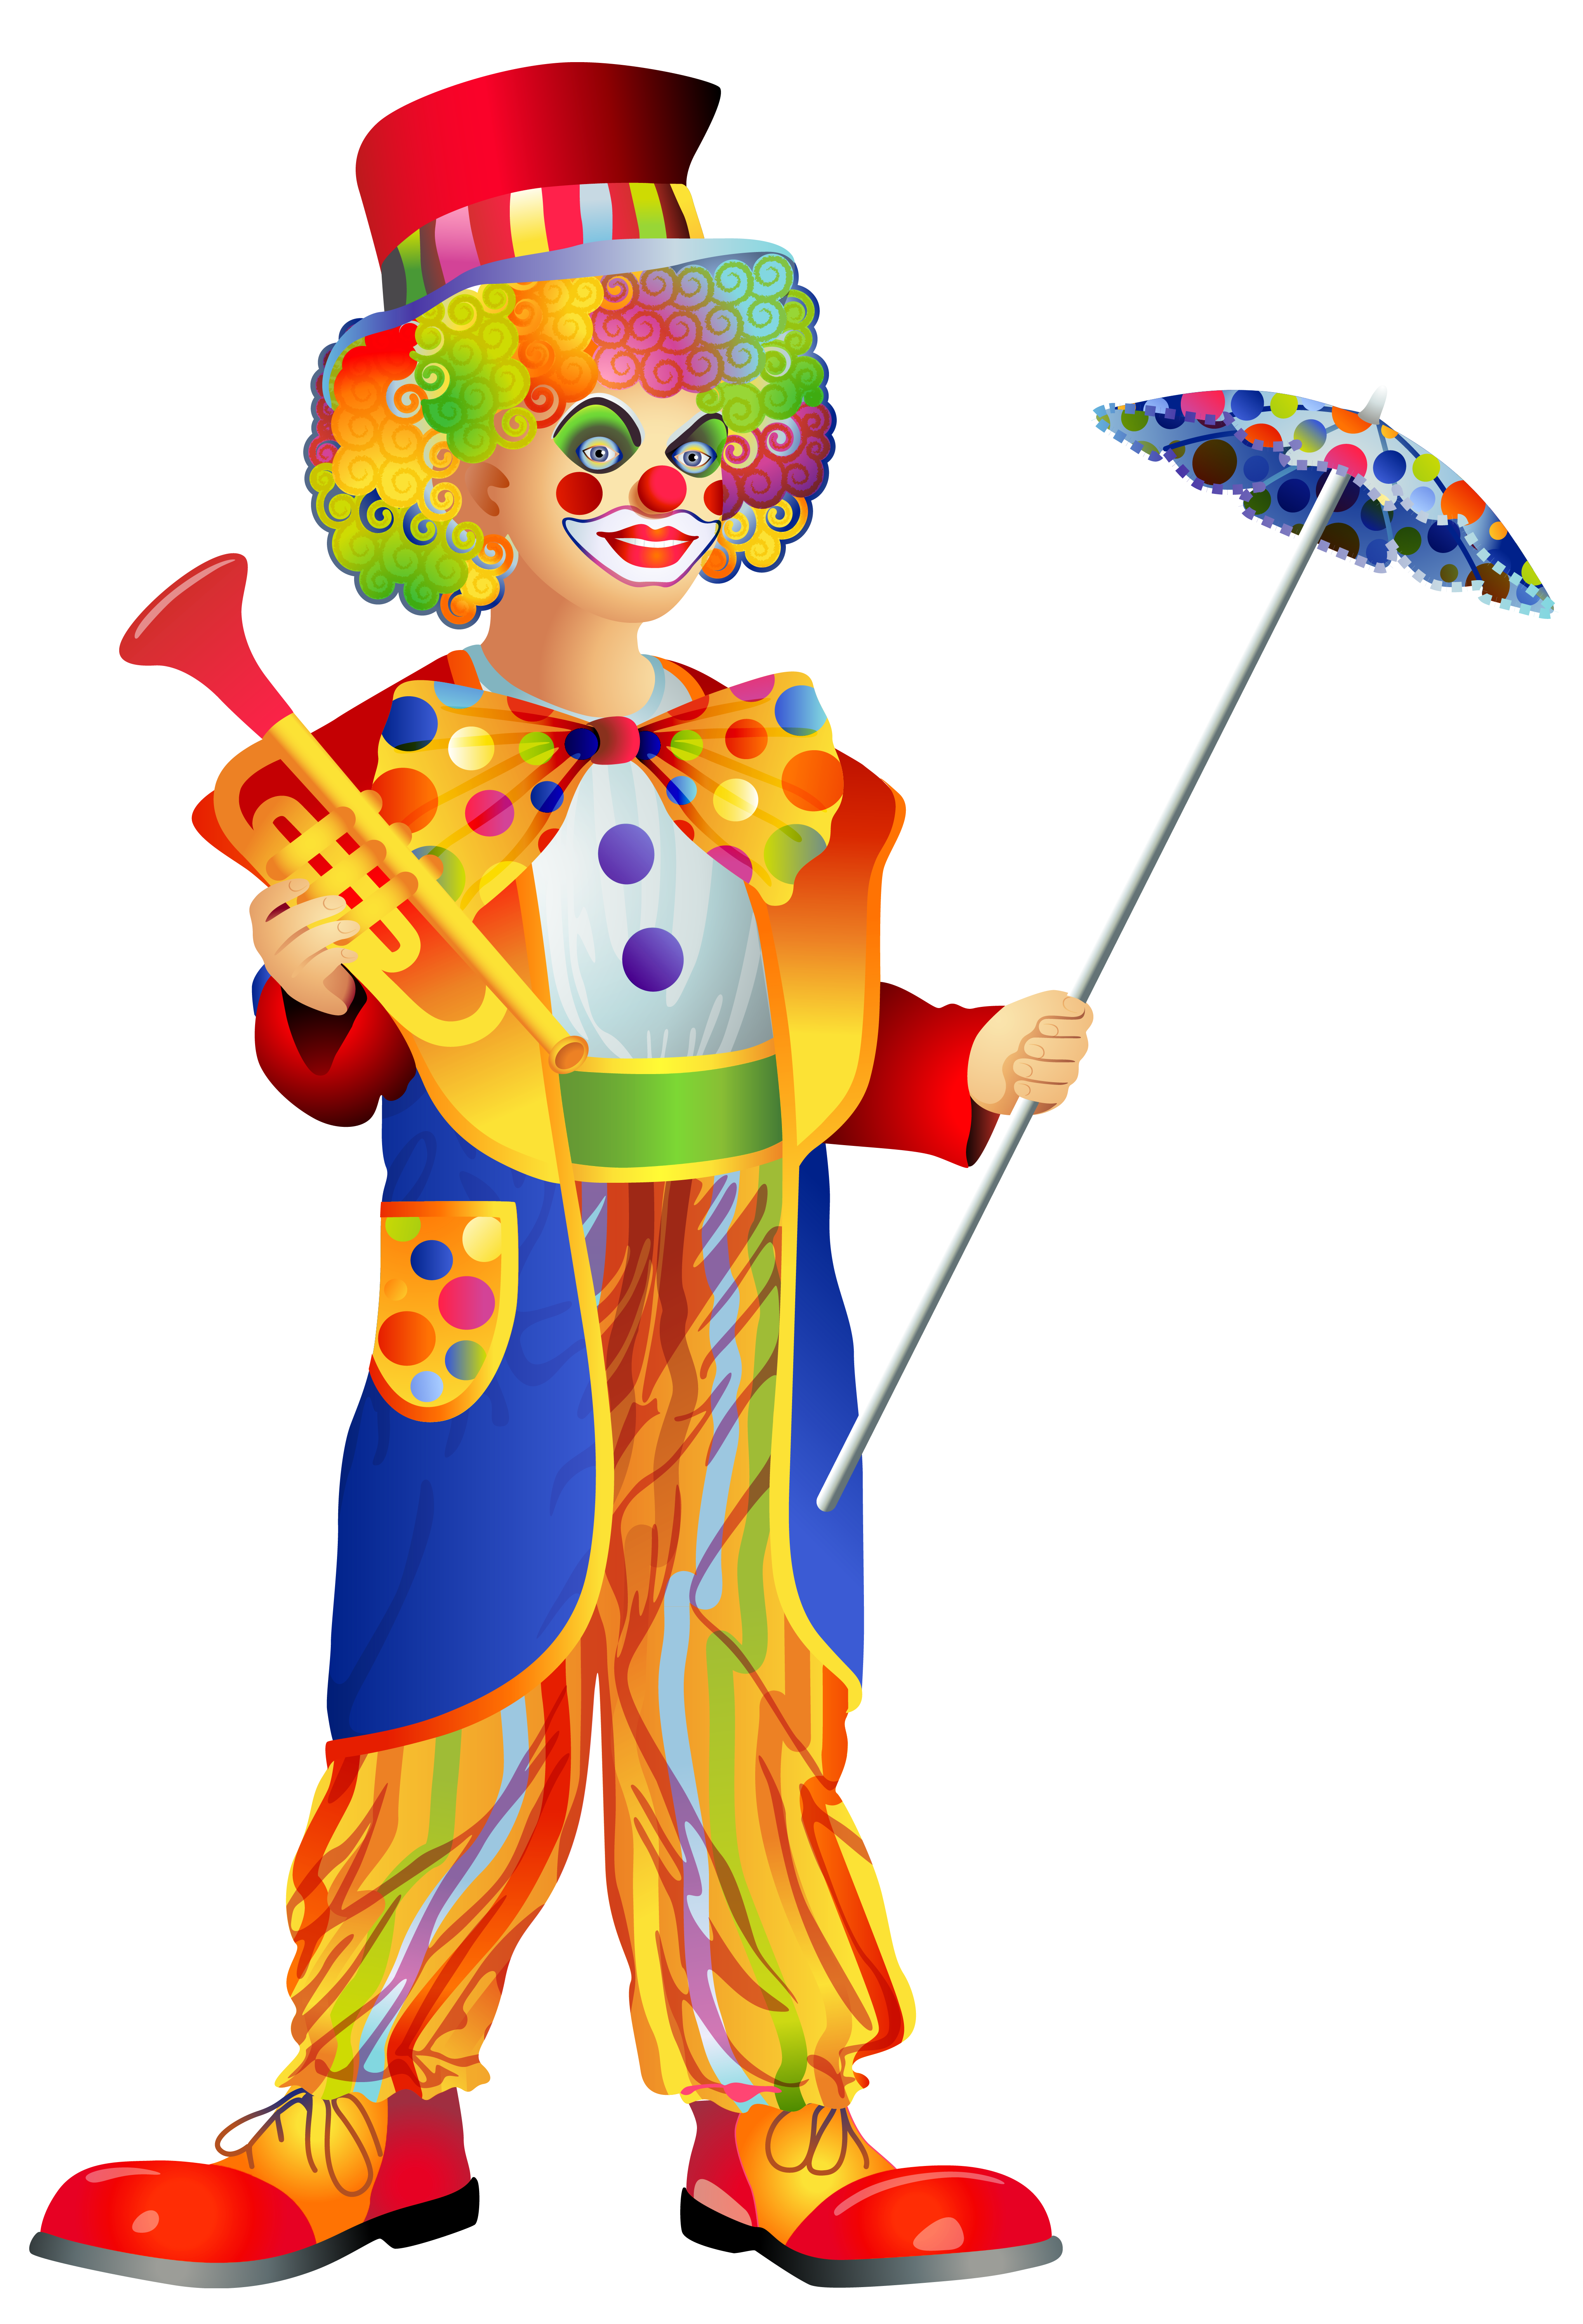 Clown clip art the cliparts.